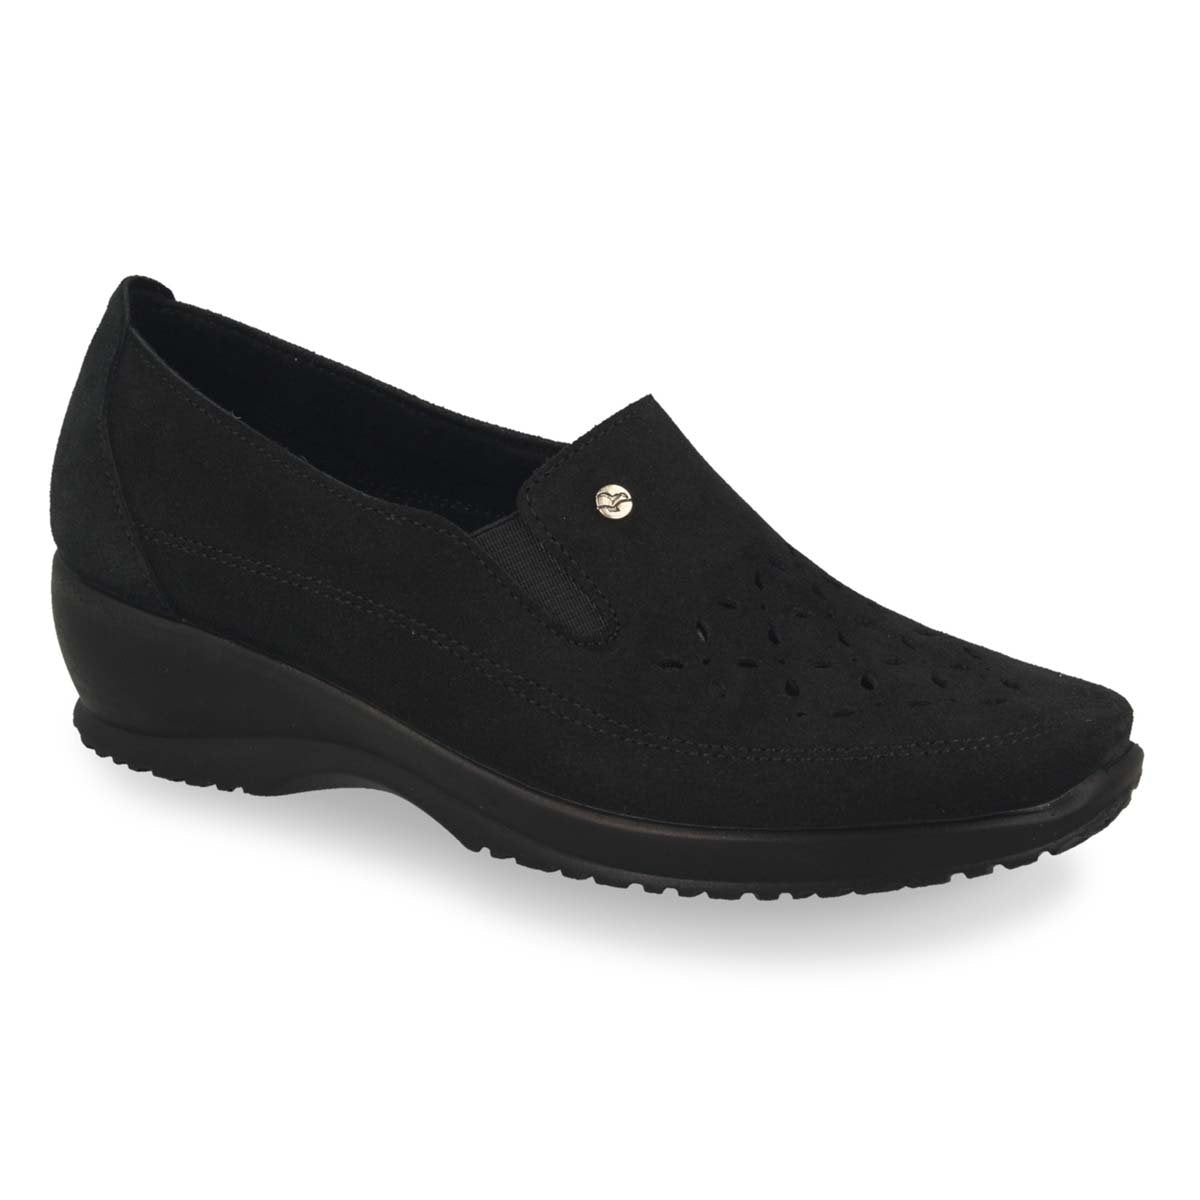 Photo of the Leather Woman Shoe Black (17d97sq)